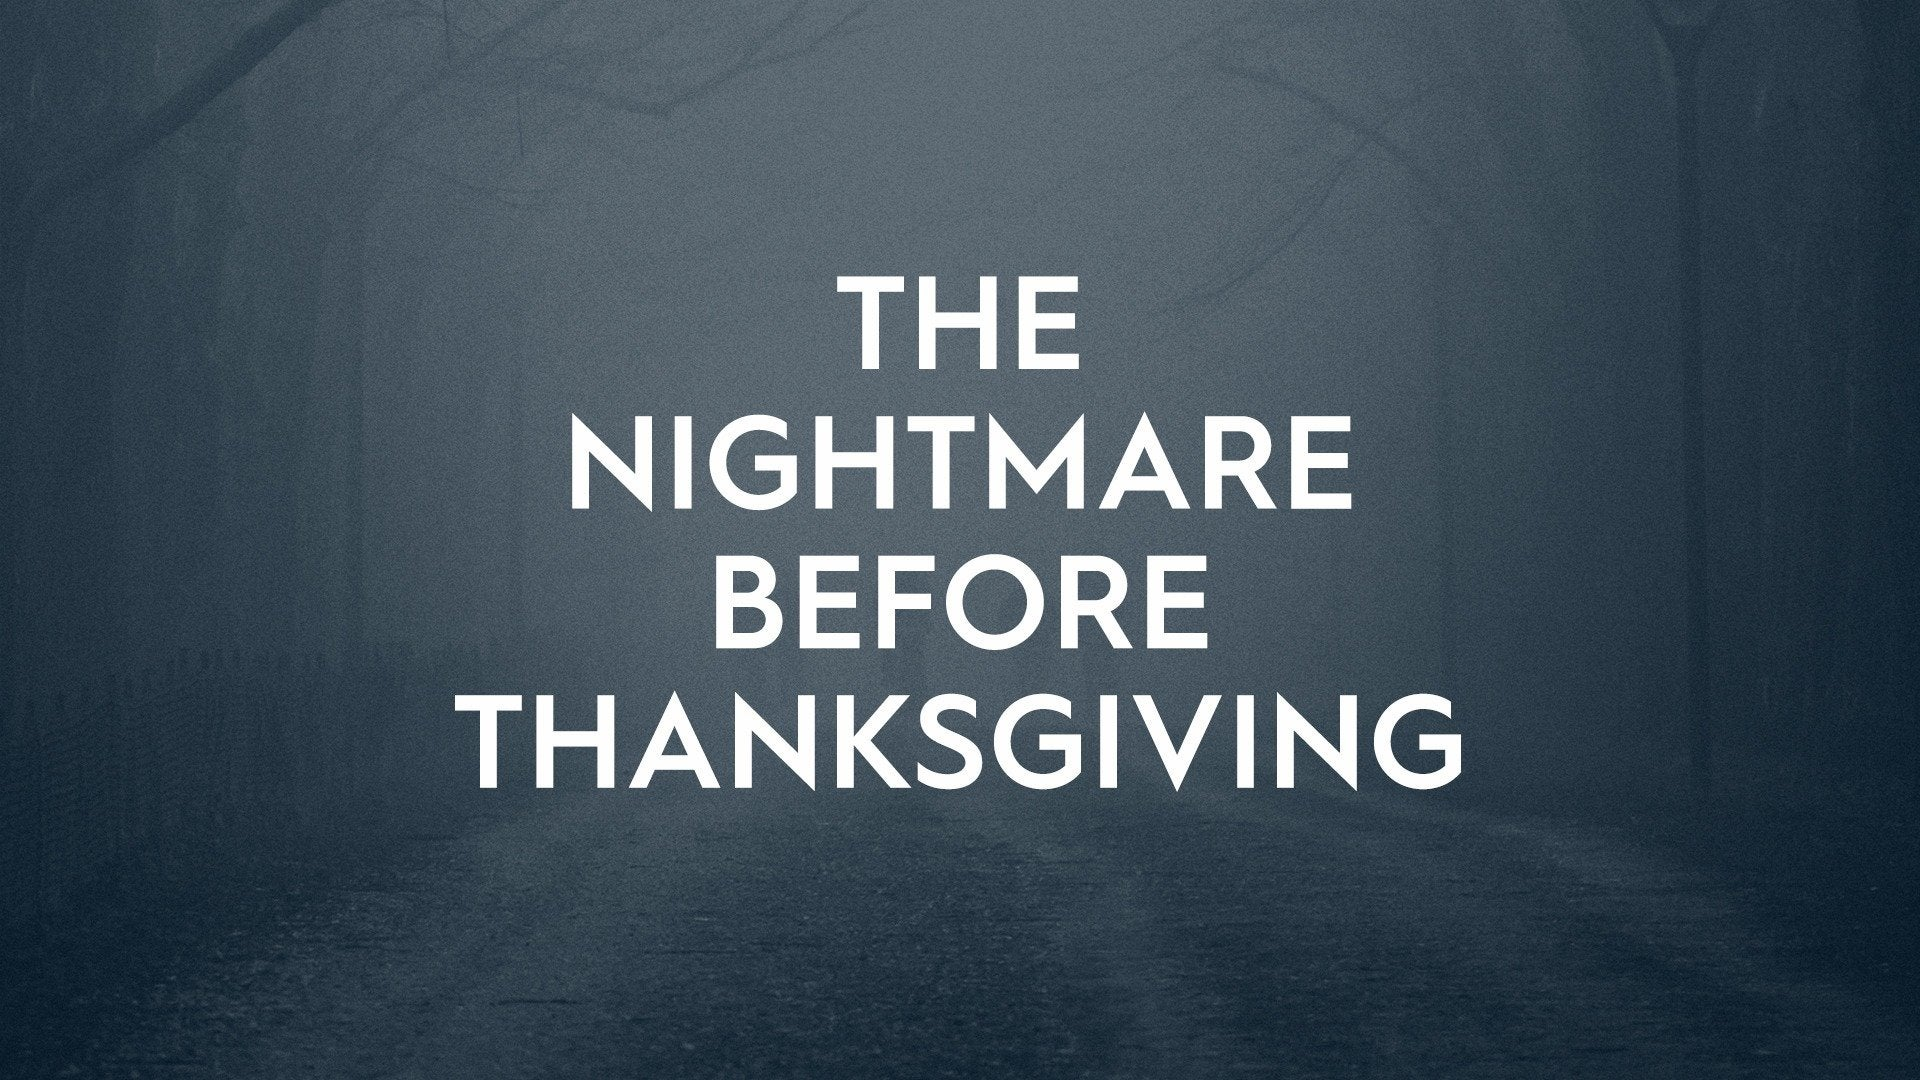 The Nightmare Before Thanksgiving